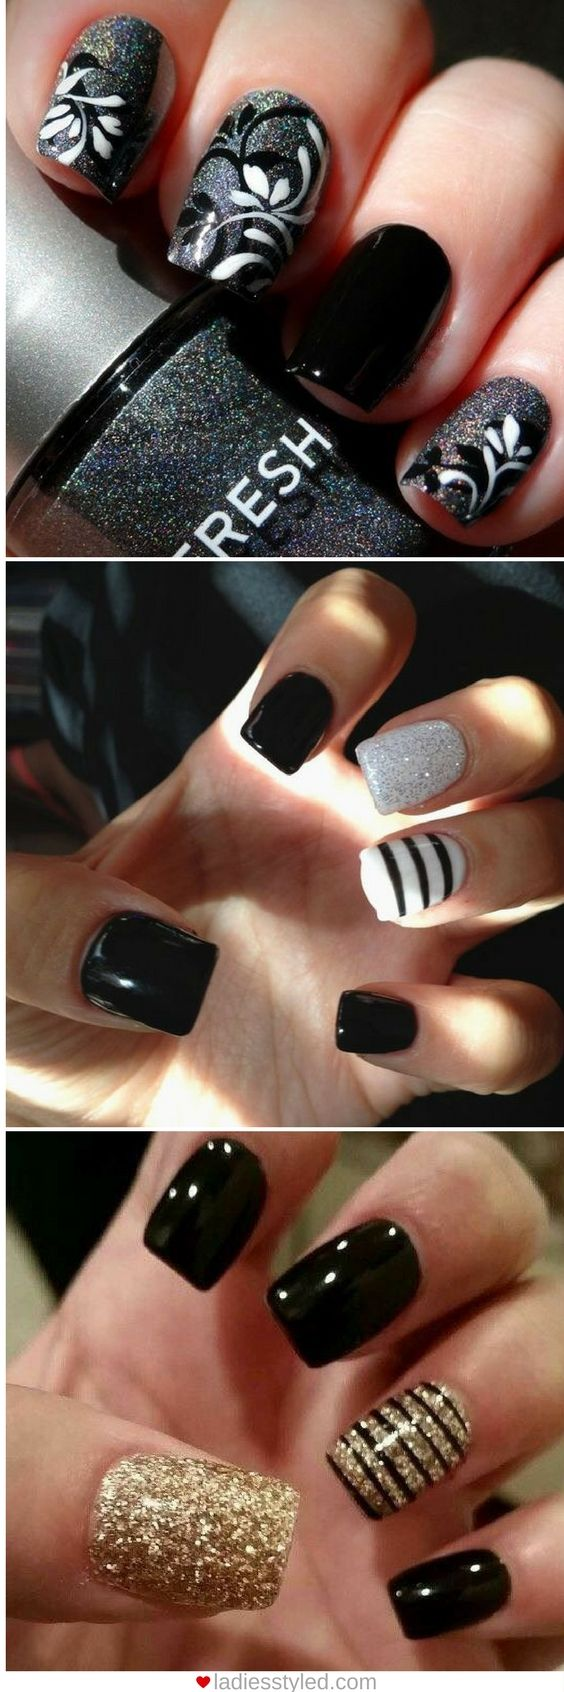 Nail Art Ideas edgy nail art : Best 25+ Black nail designs ideas on Pinterest | Black nails ...